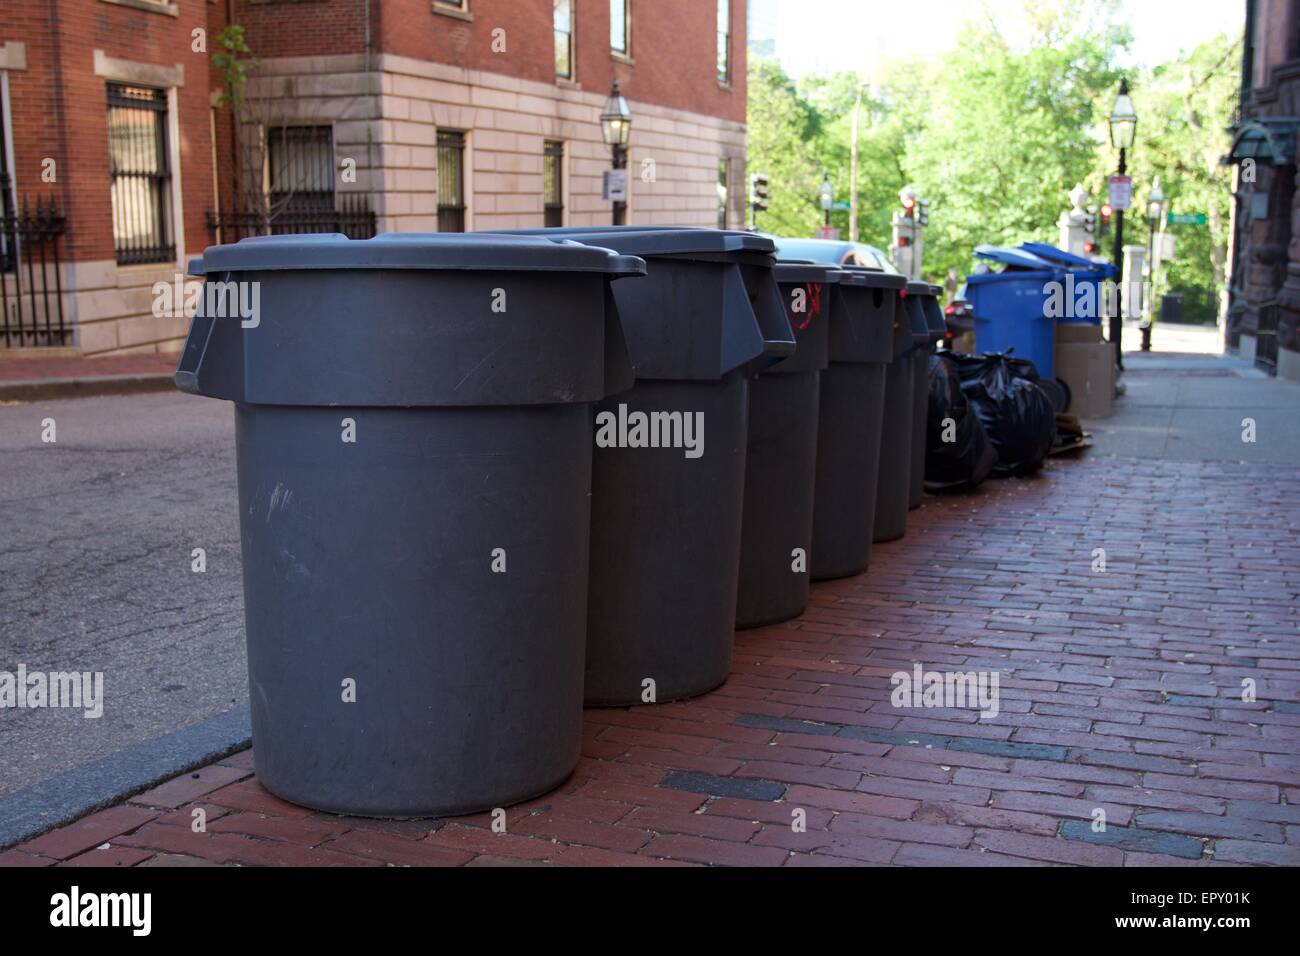 Trash cans vs Recycle cans - Stock Image